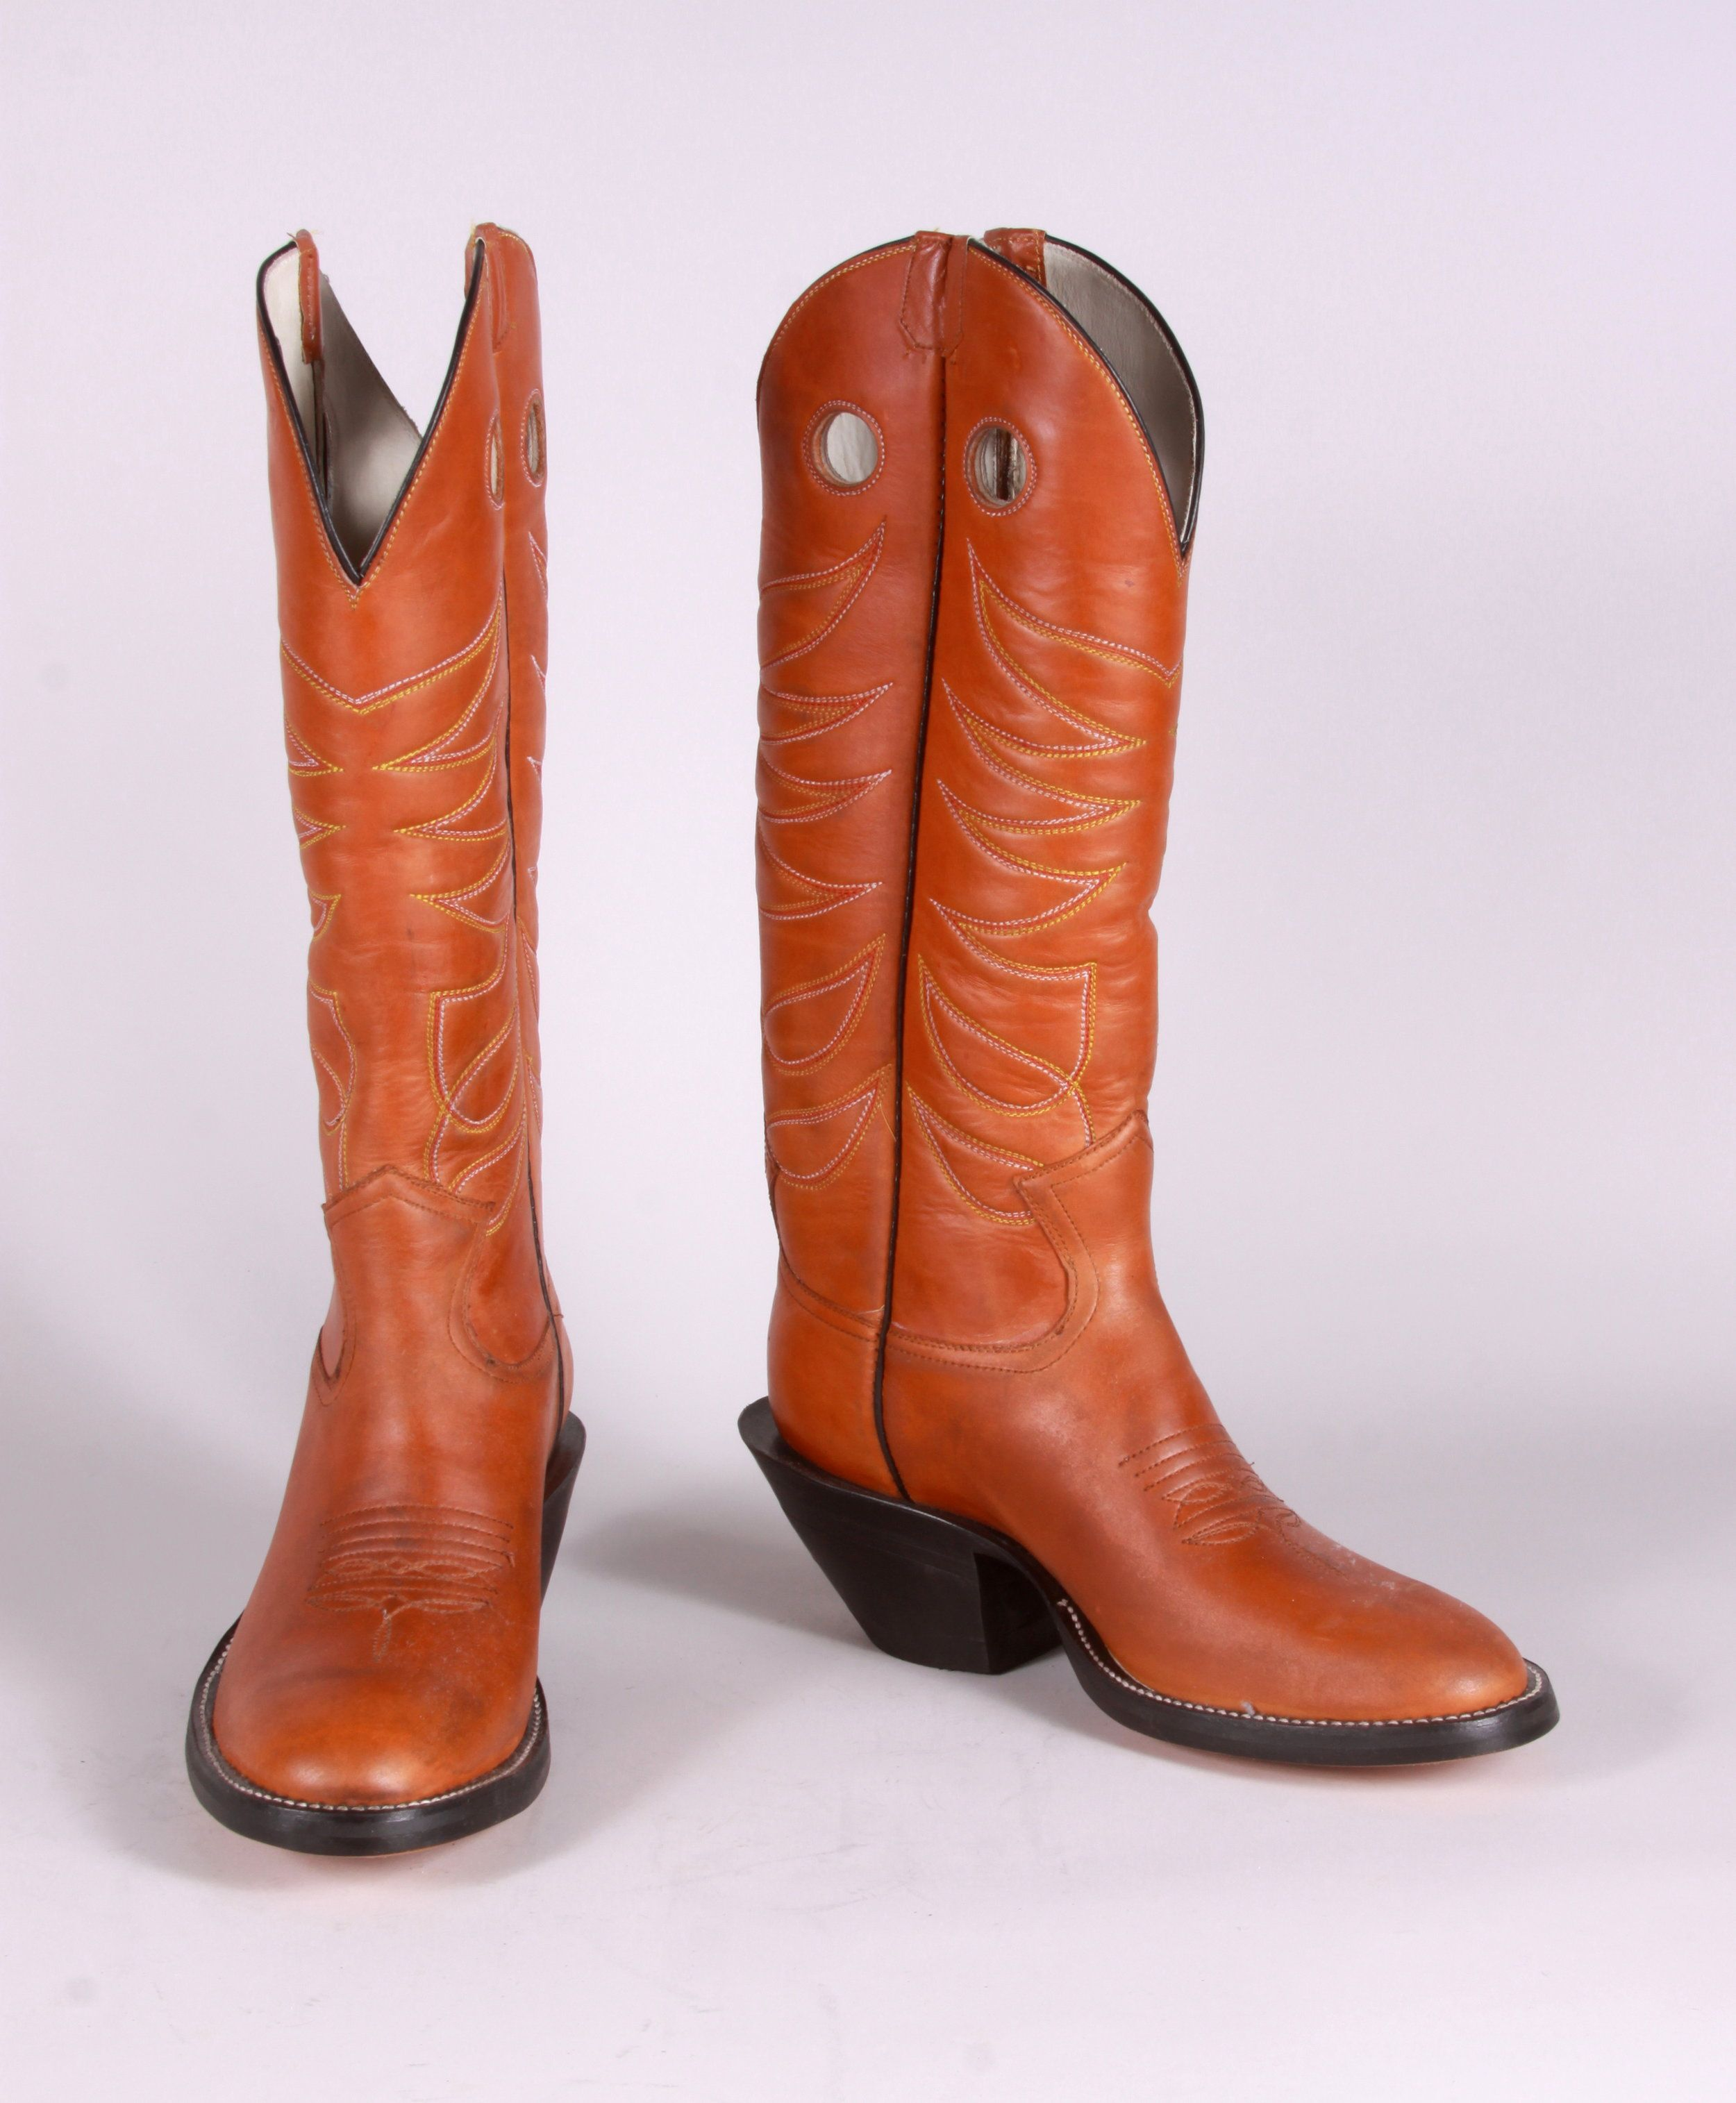 72458c8a61f 650 Unforgiven Buckaroo Working Cowboy Boots. Round Wellington Toes ...